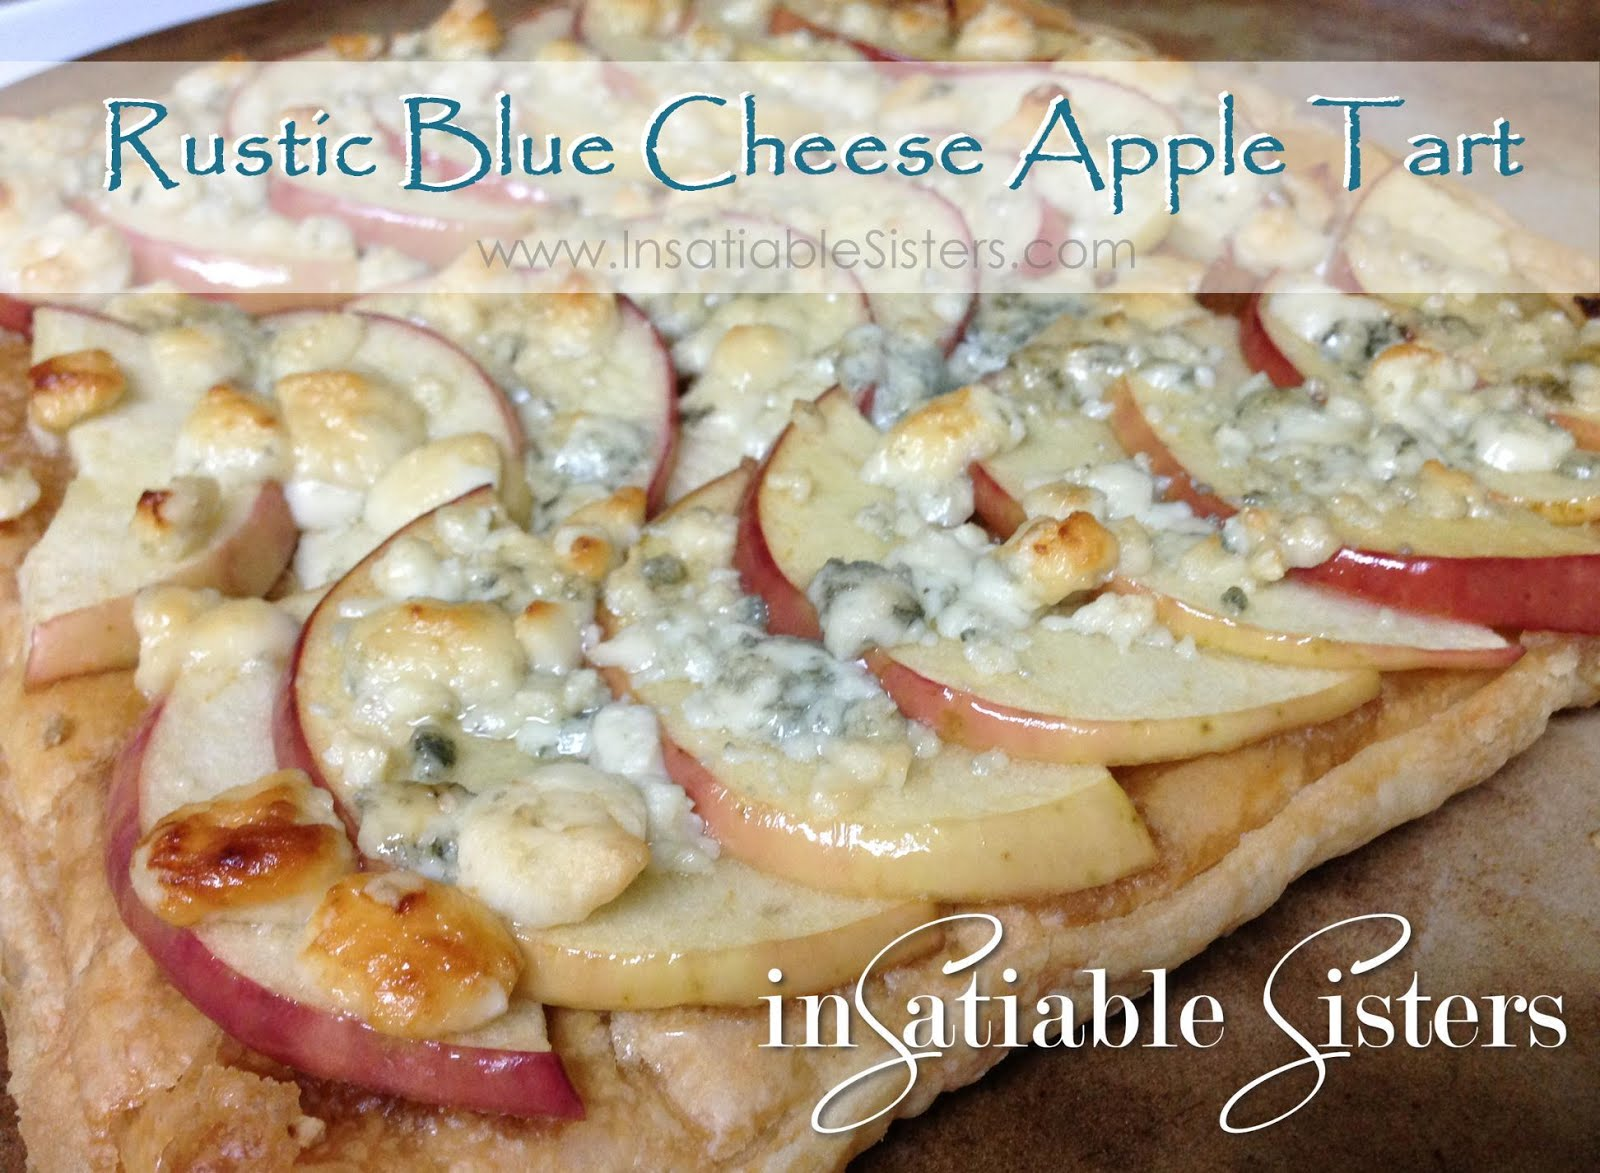 Rustic Blue Cheese Apple Tart.jpg